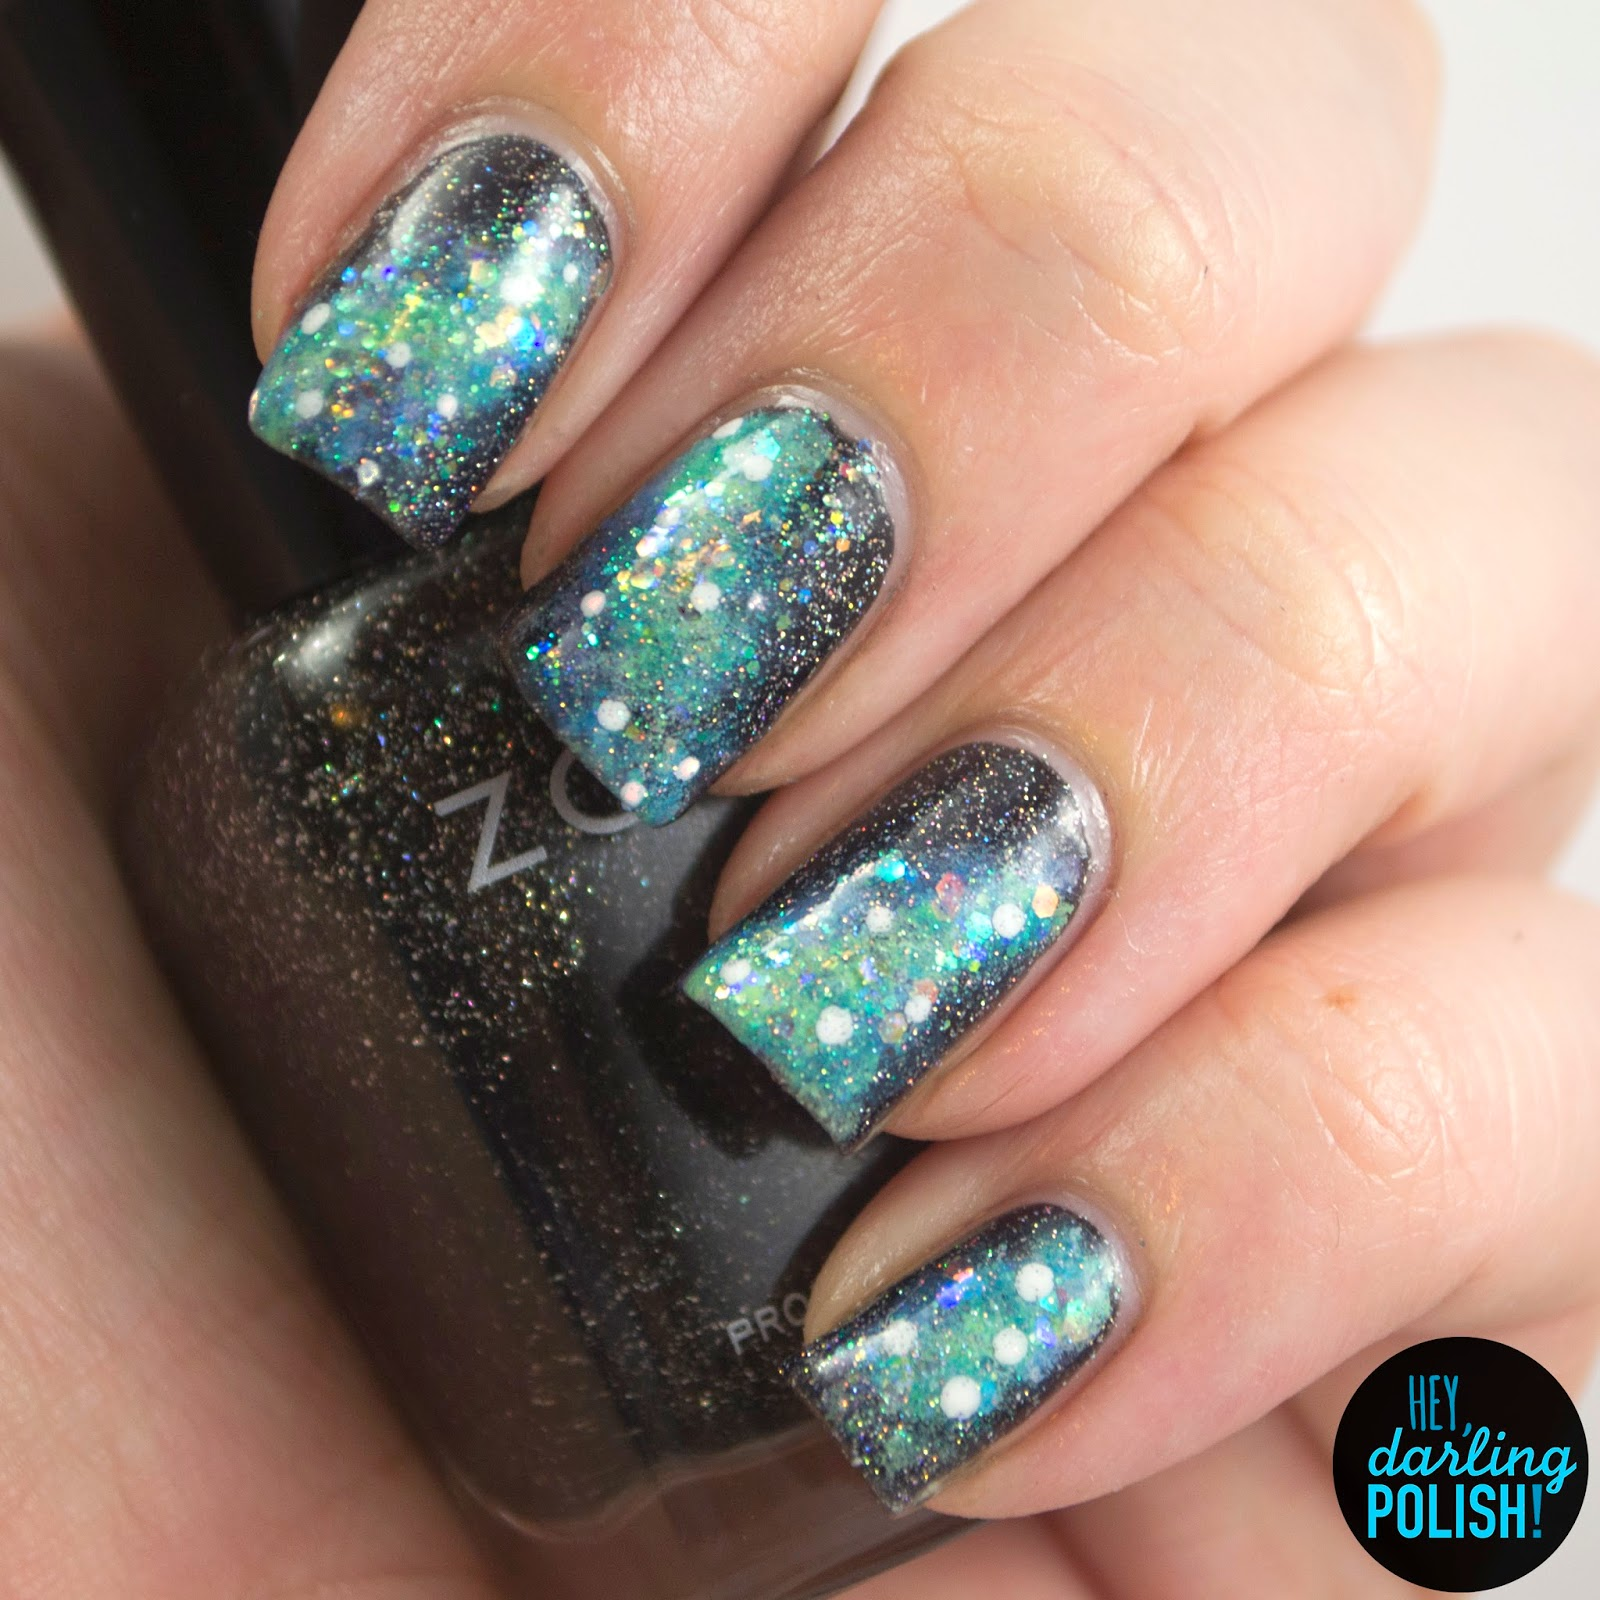 nails, nail polish, polish, nail art, galaxies, galaxy, theme buffet, sparkle, glitter, hey darling polish